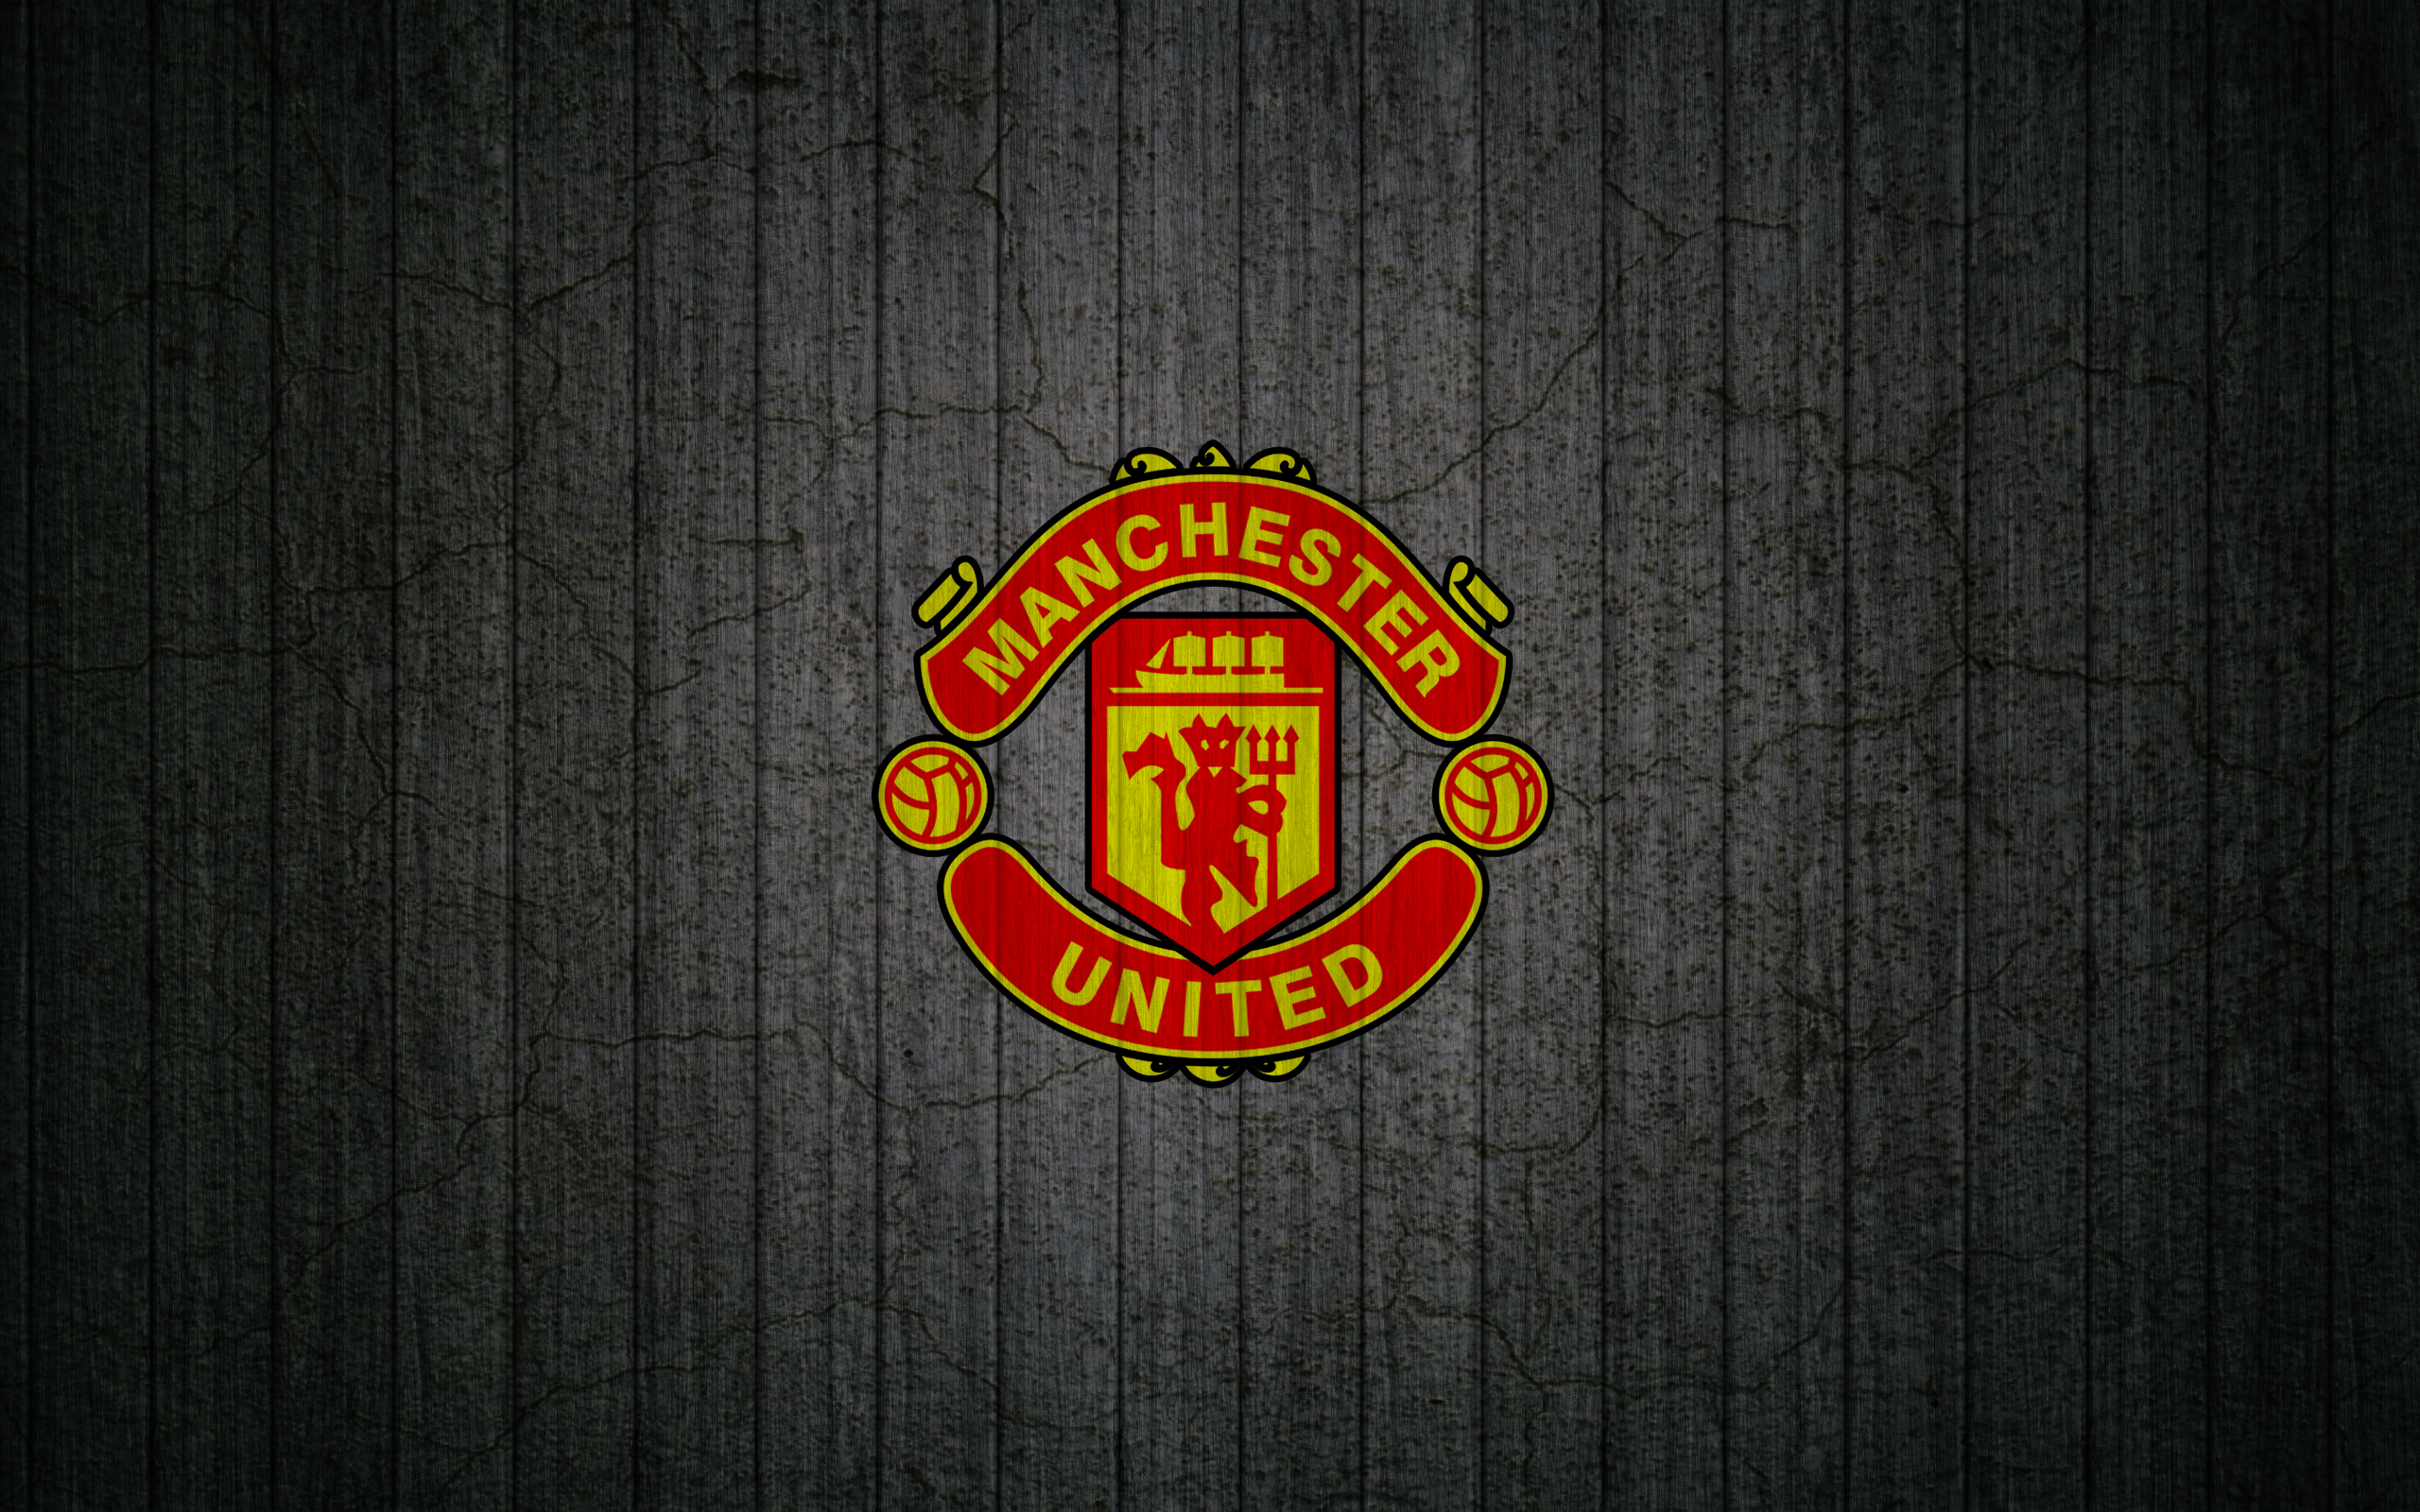 Manchester united wallpaper by sspace7 on deviantart manchester united wallpaper by sspace7 manchester united wallpaper by sspace7 voltagebd Choice Image